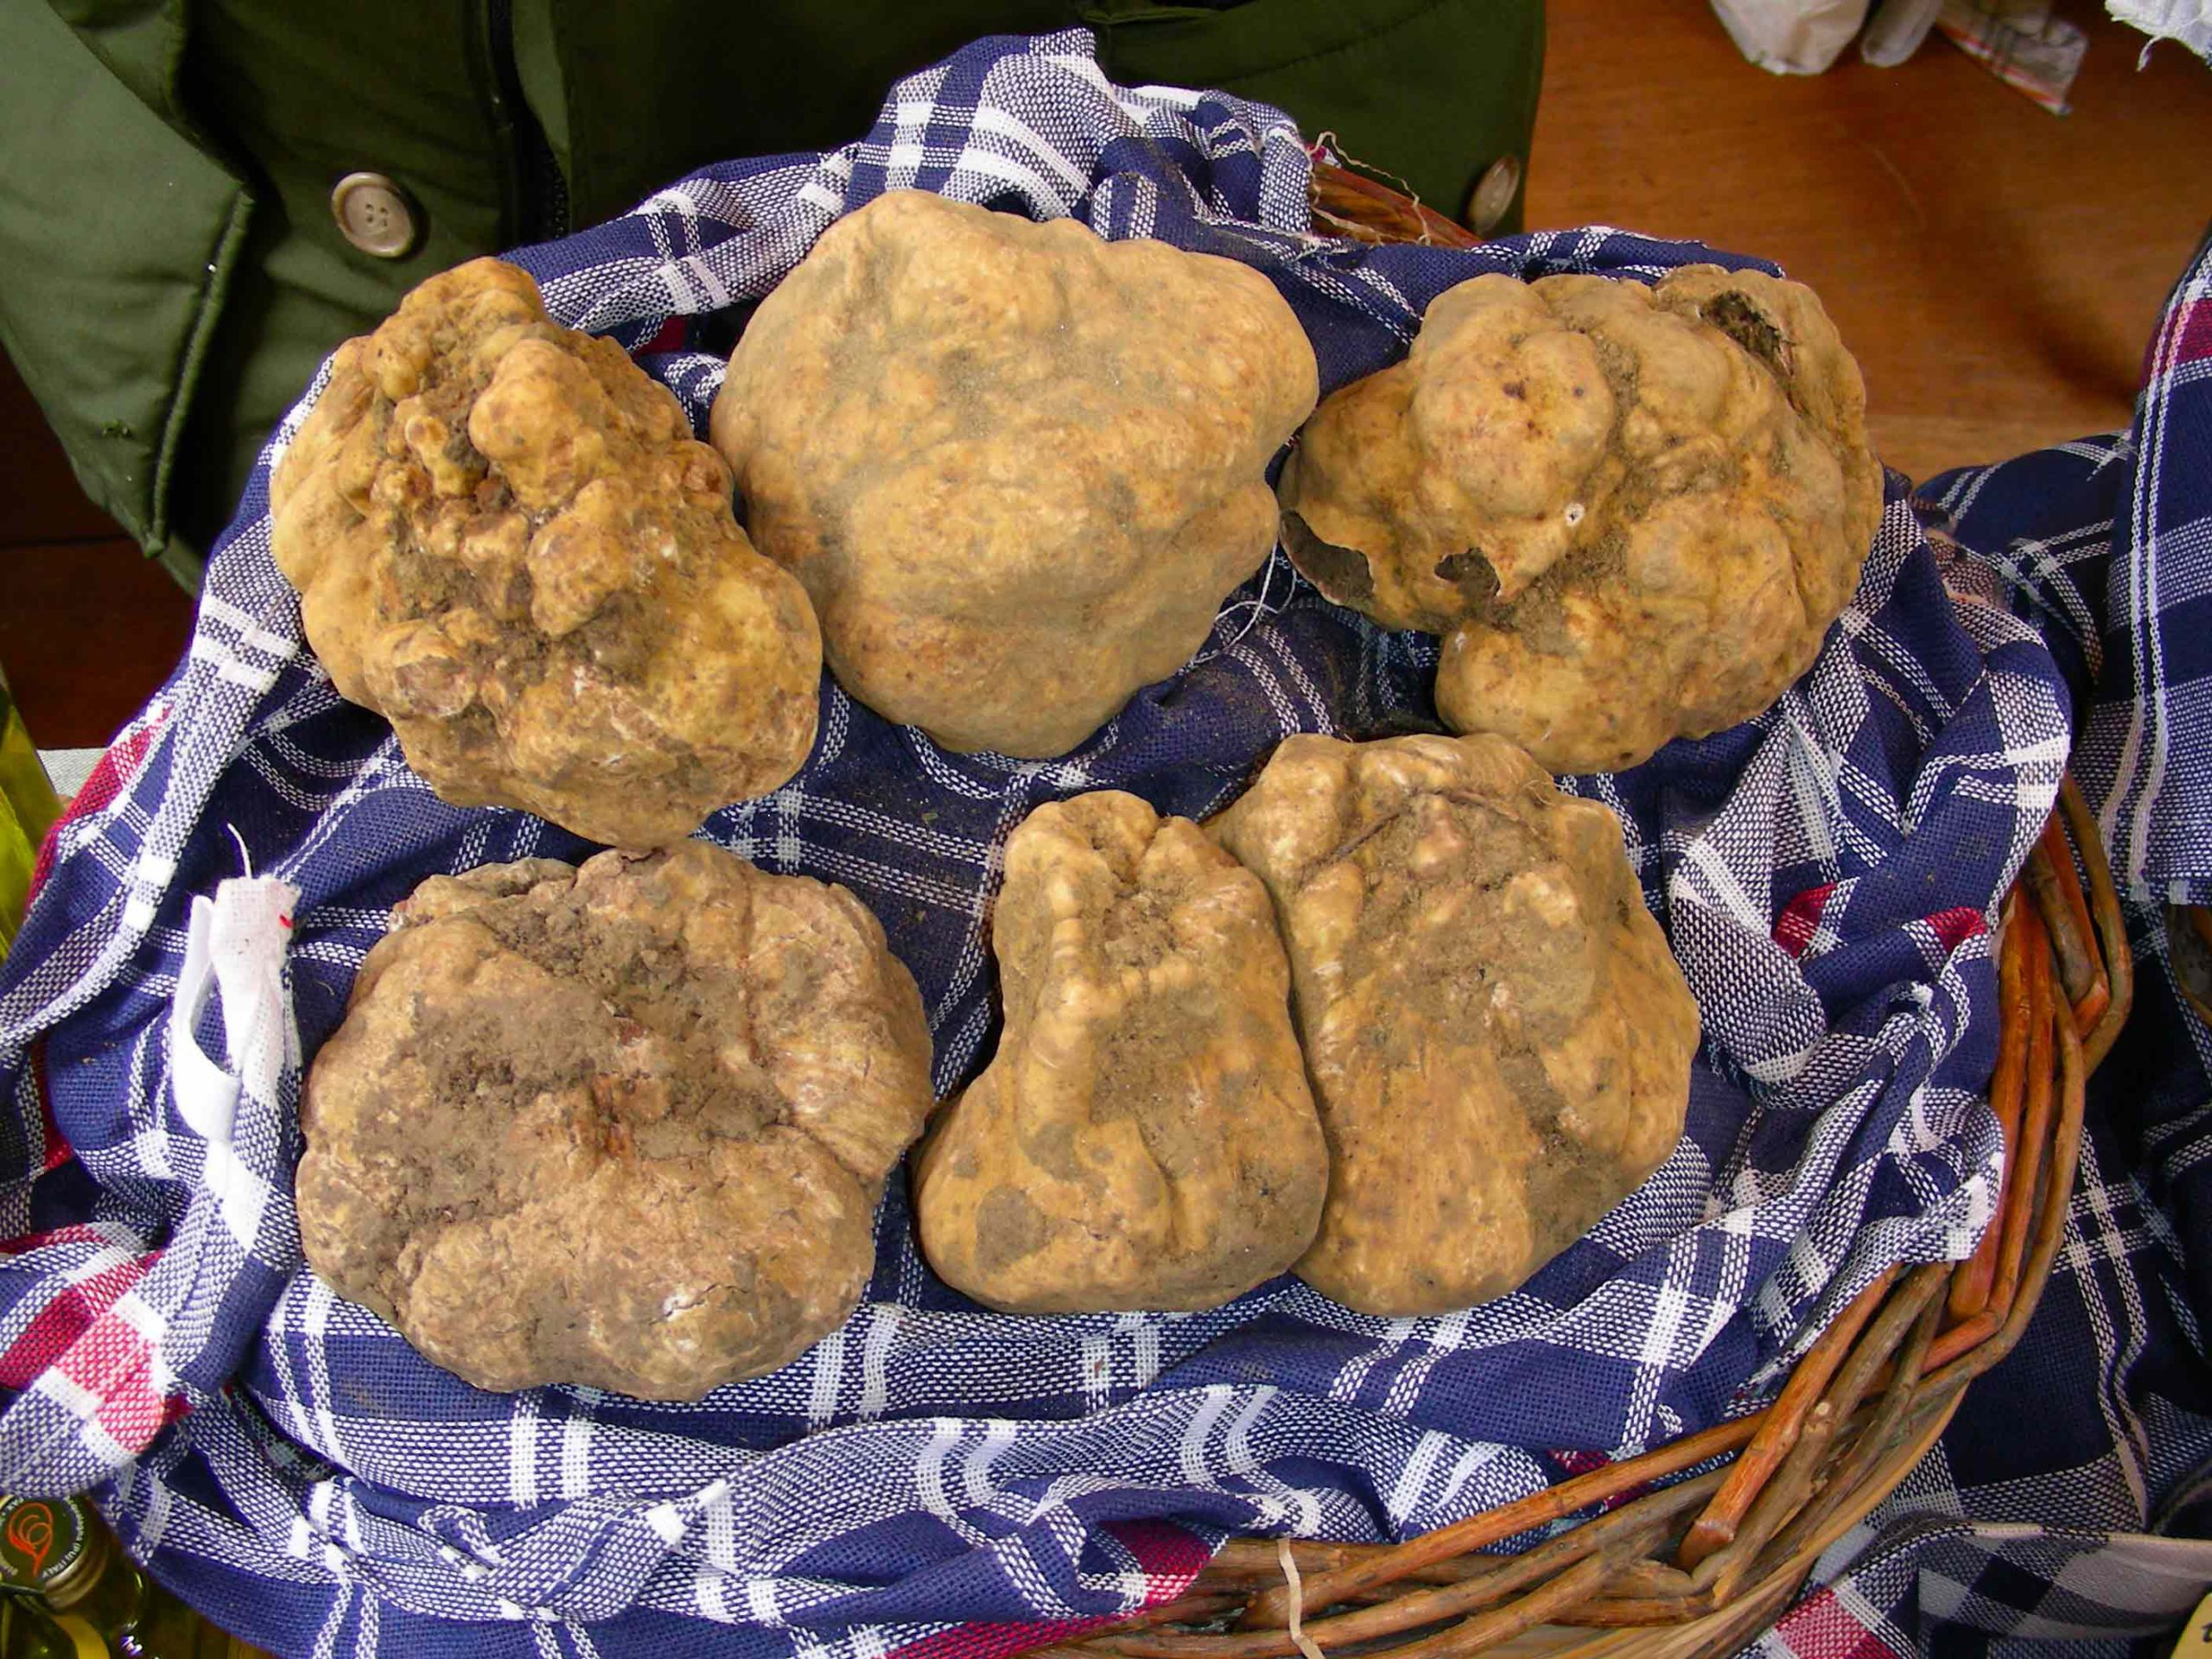 Truffles Italy Guide